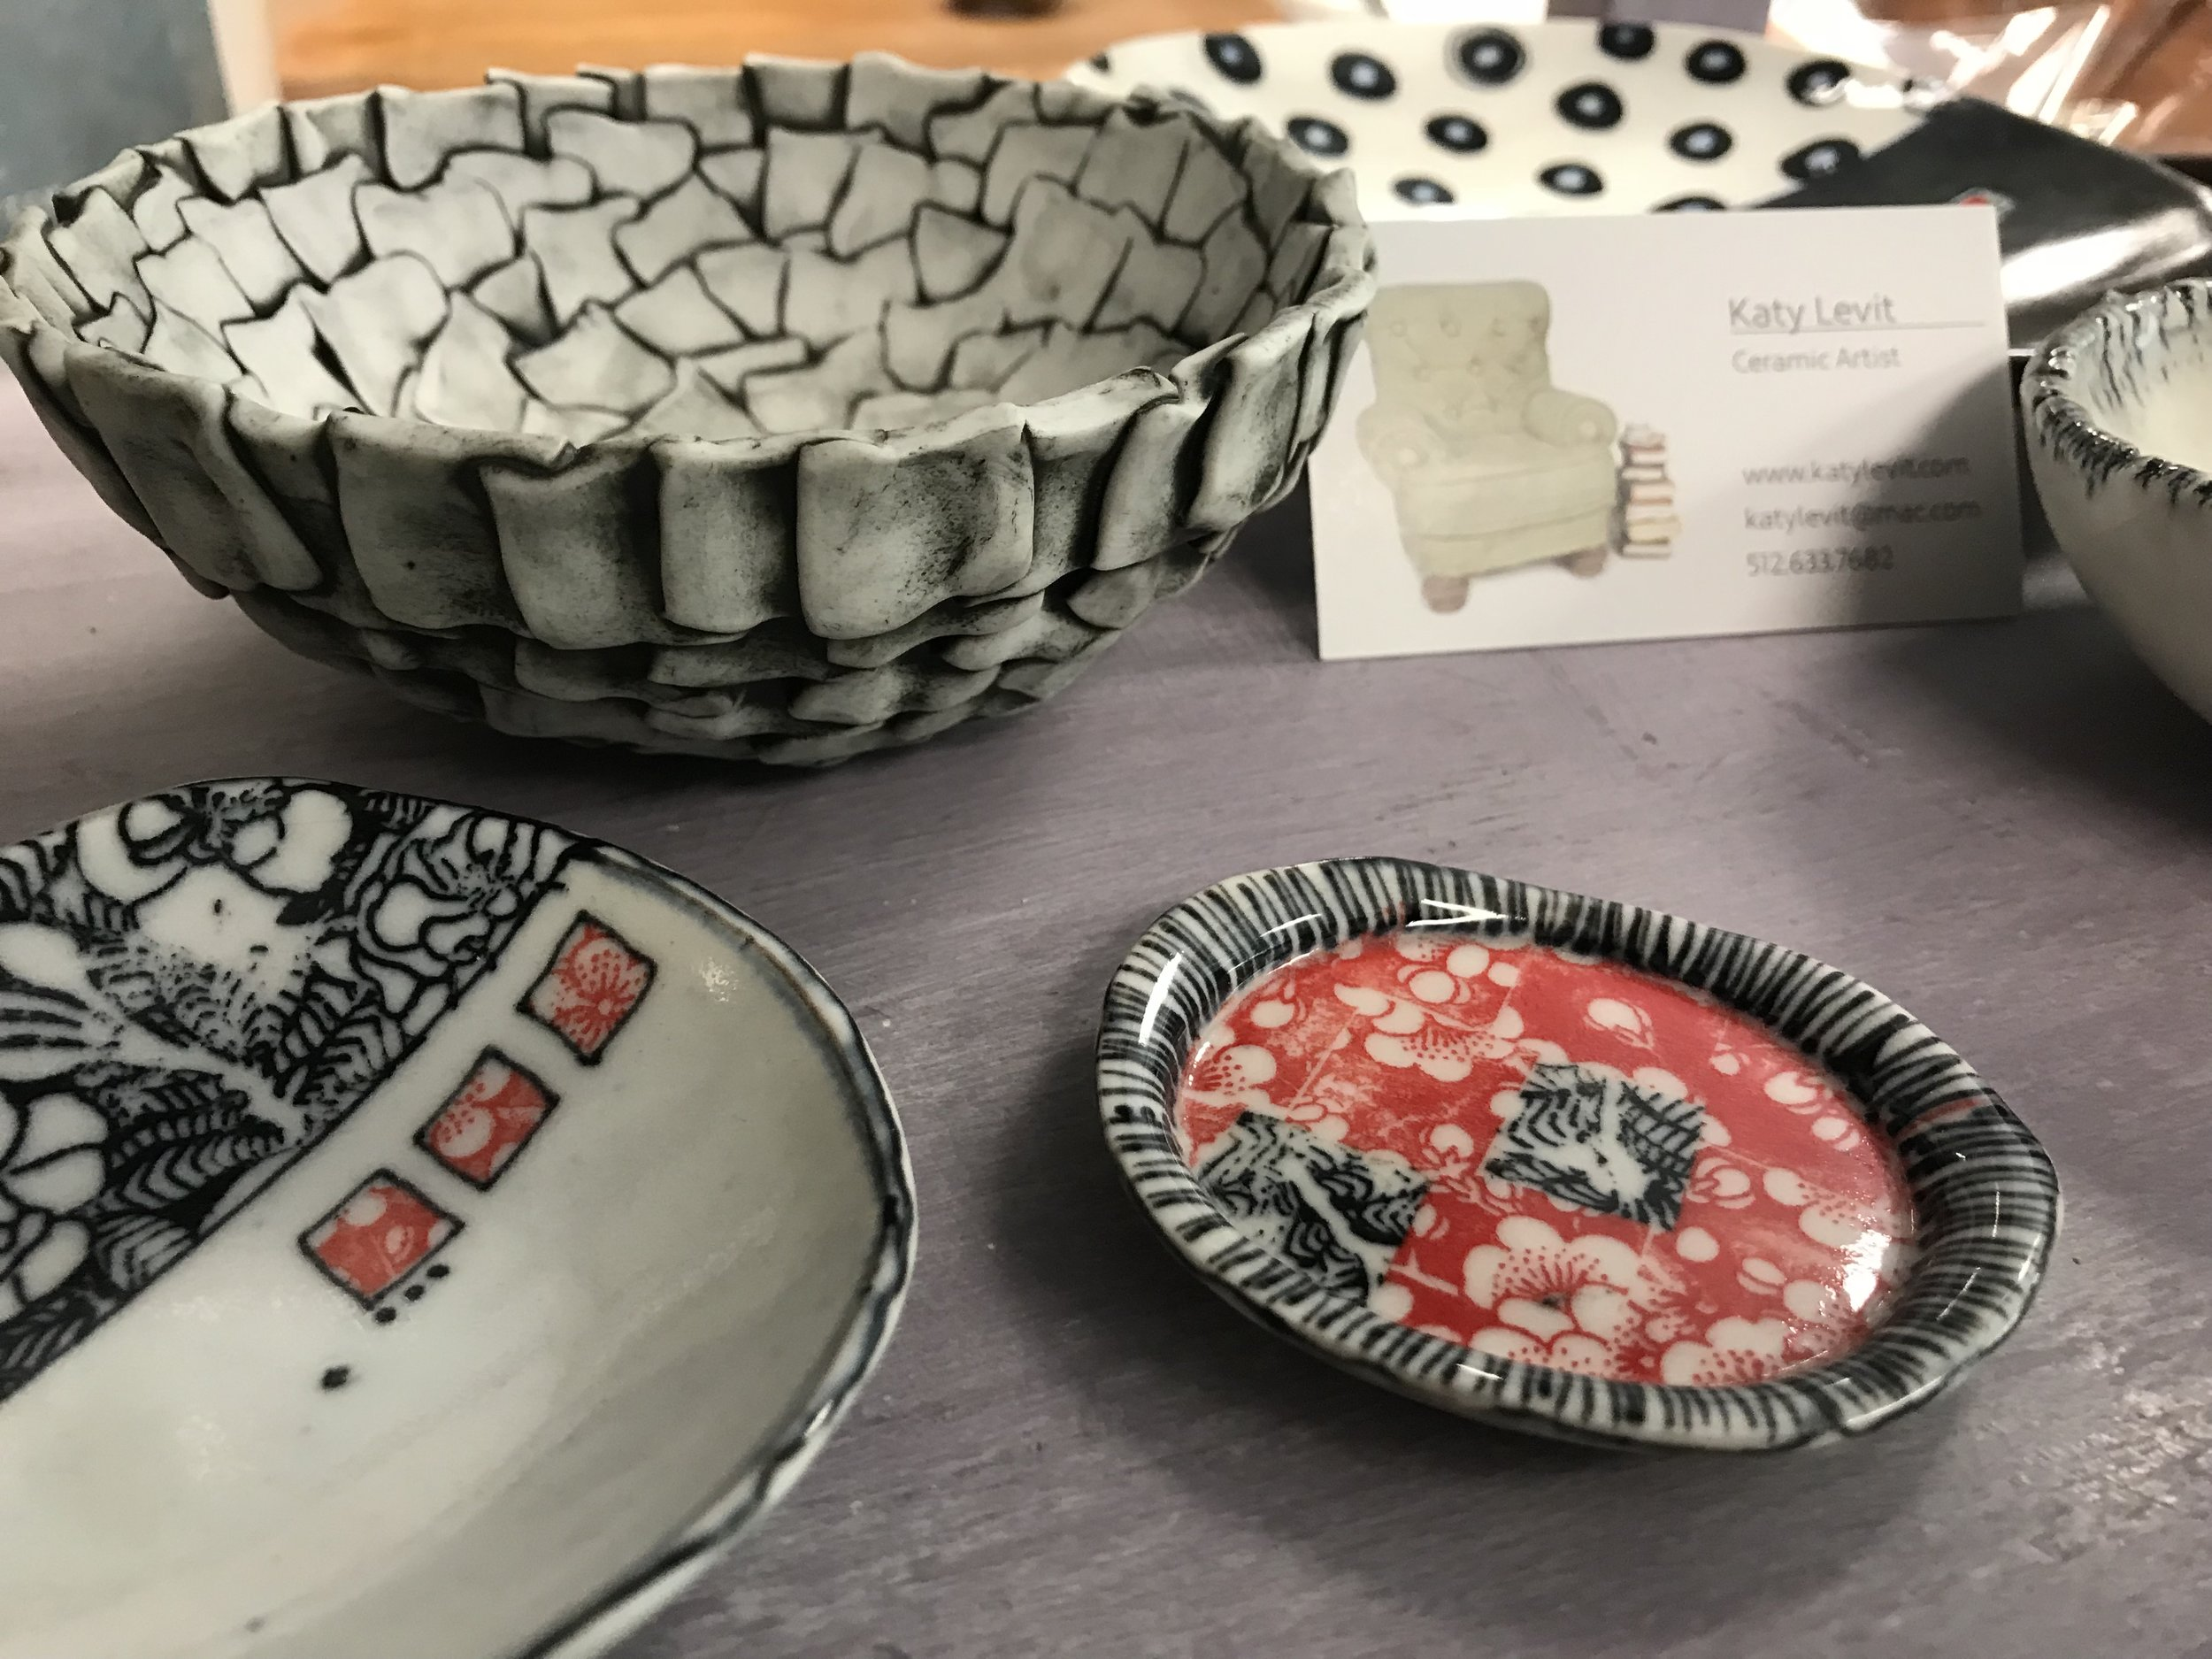 Katy Levit - Ceramic artist specializing in sculpture and dishware